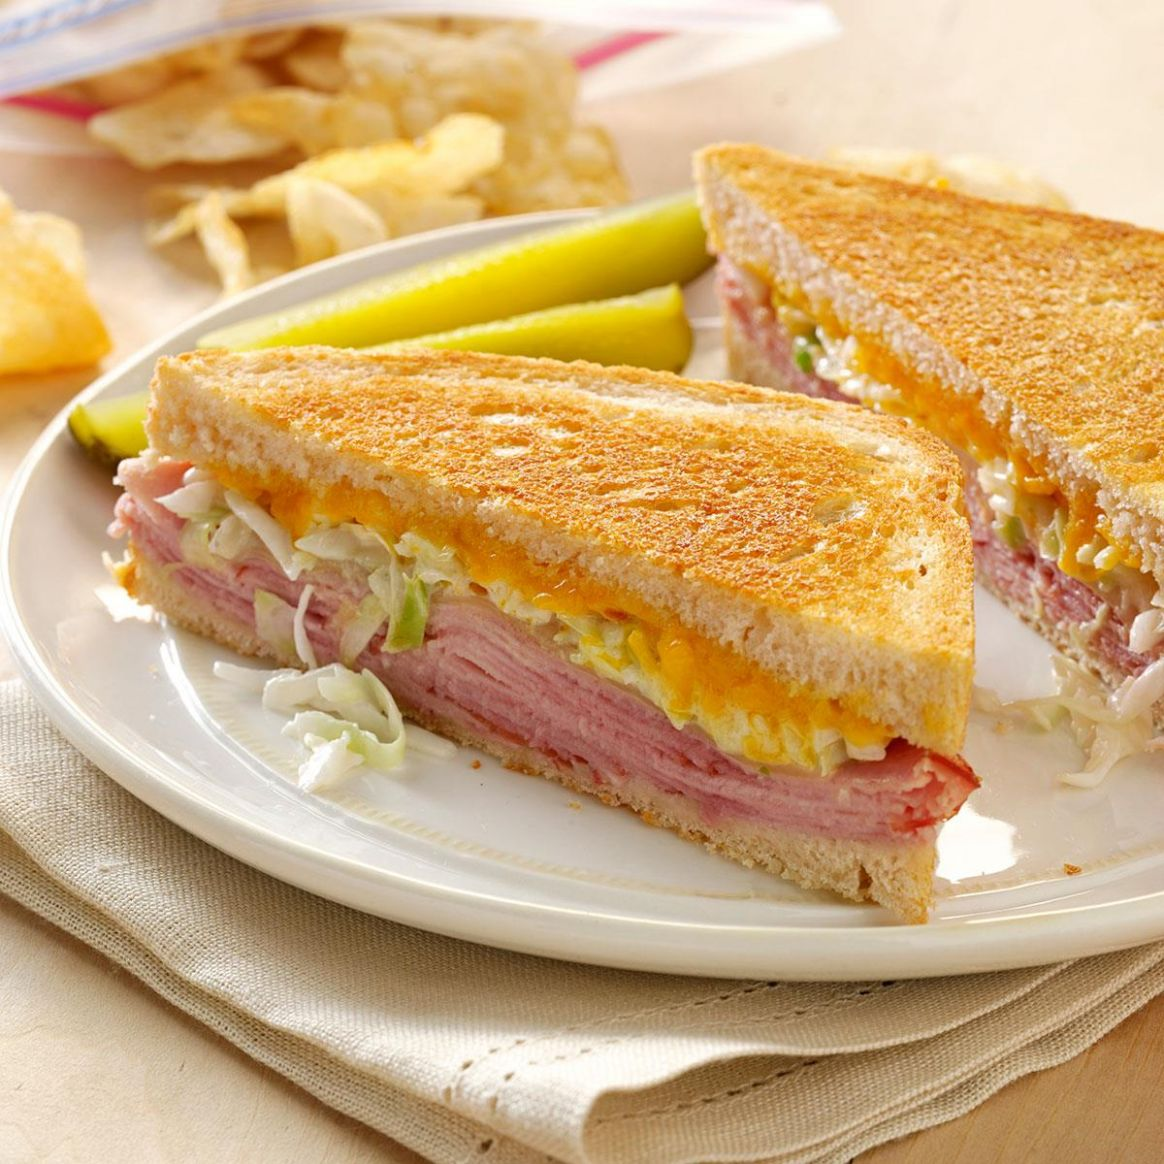 Zesty Grilled Sandwiches - Sandwich Recipes Simple